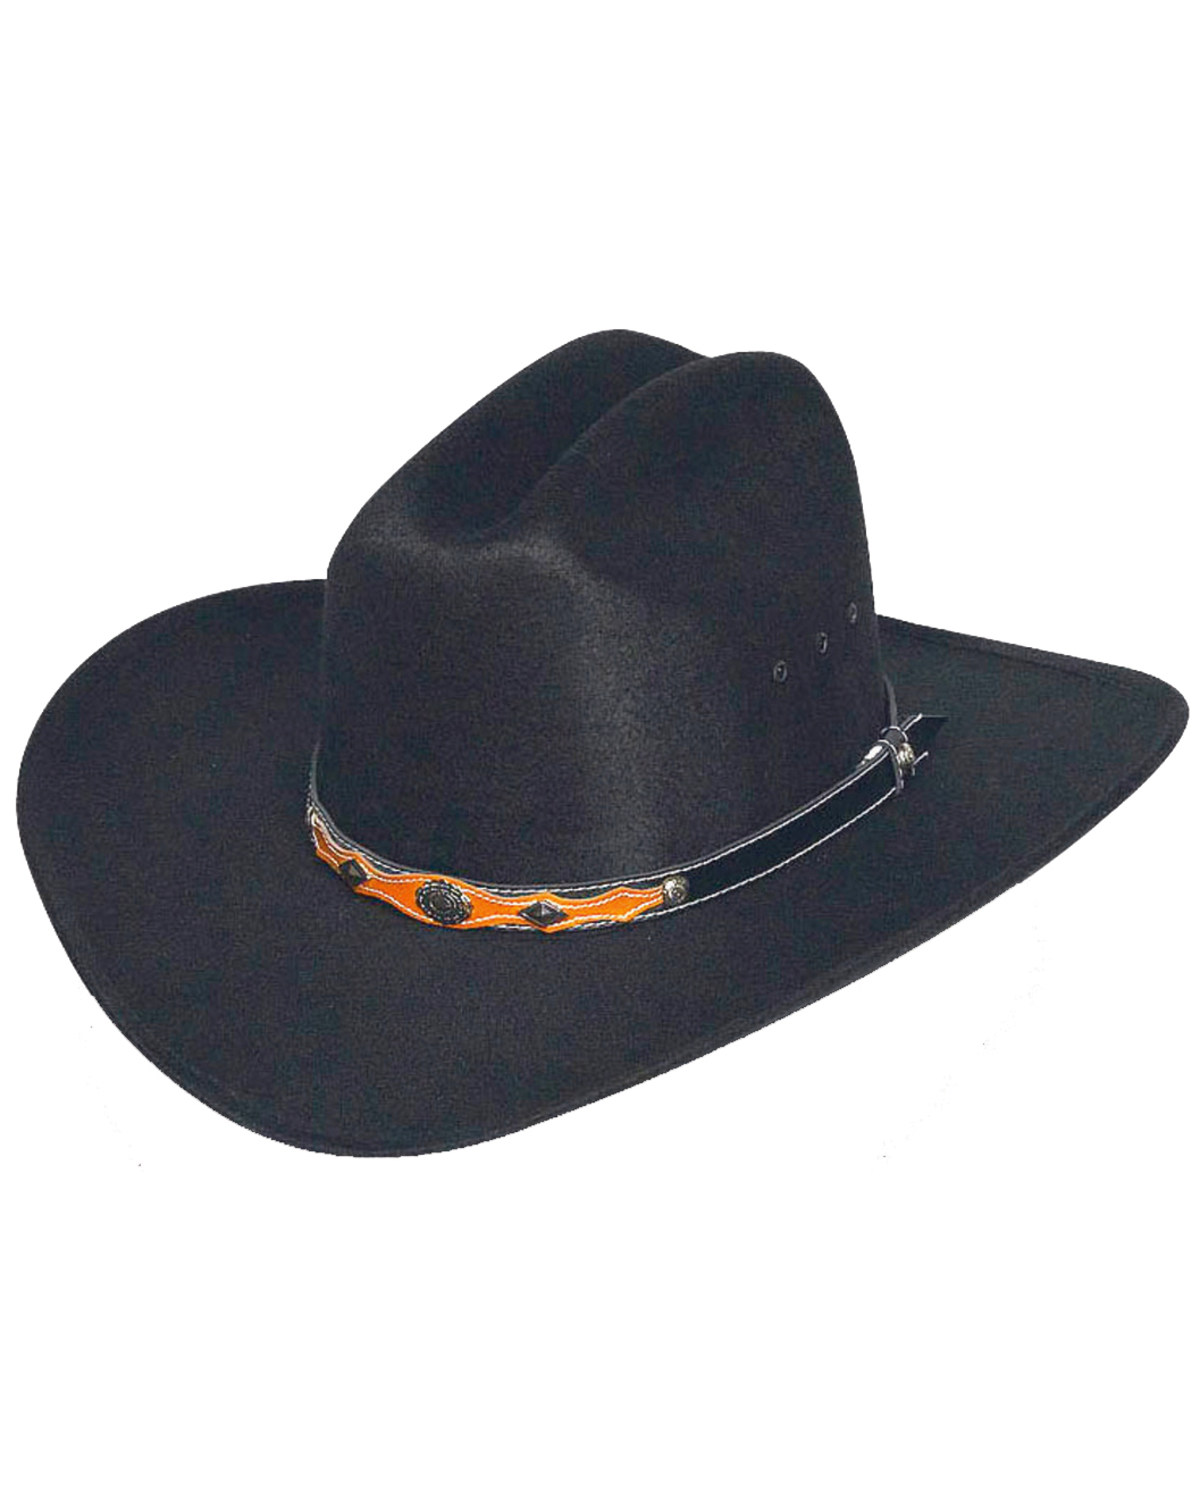 Western Express Men s Black Faux Felt Cowboy Hat  46f779028fb9